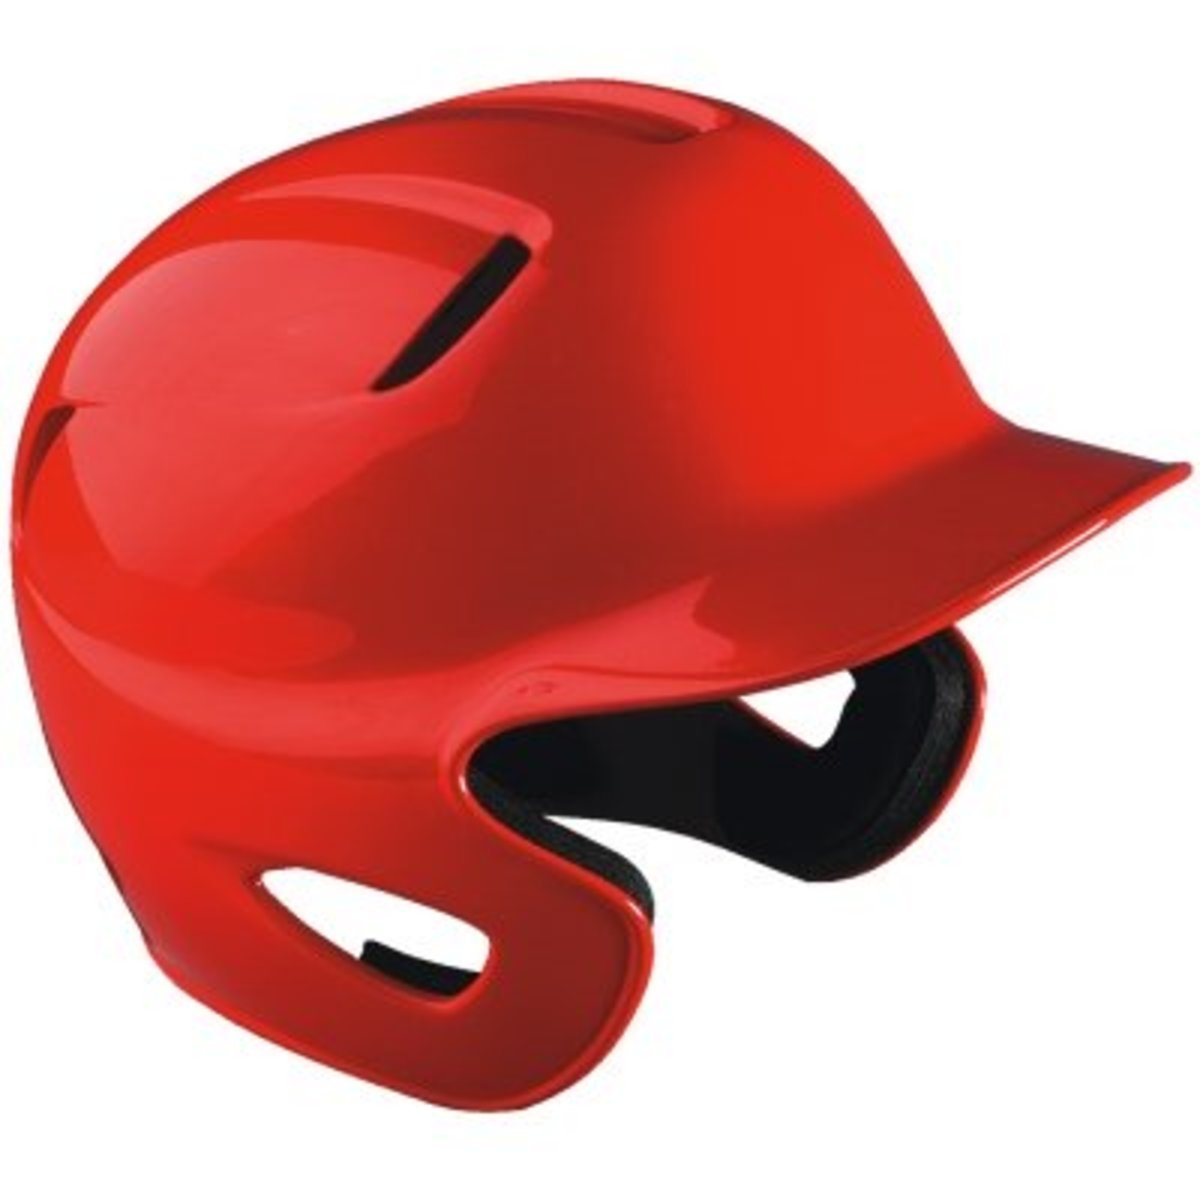 Batting helmets are often cheaper than many other baseball-related gifts.